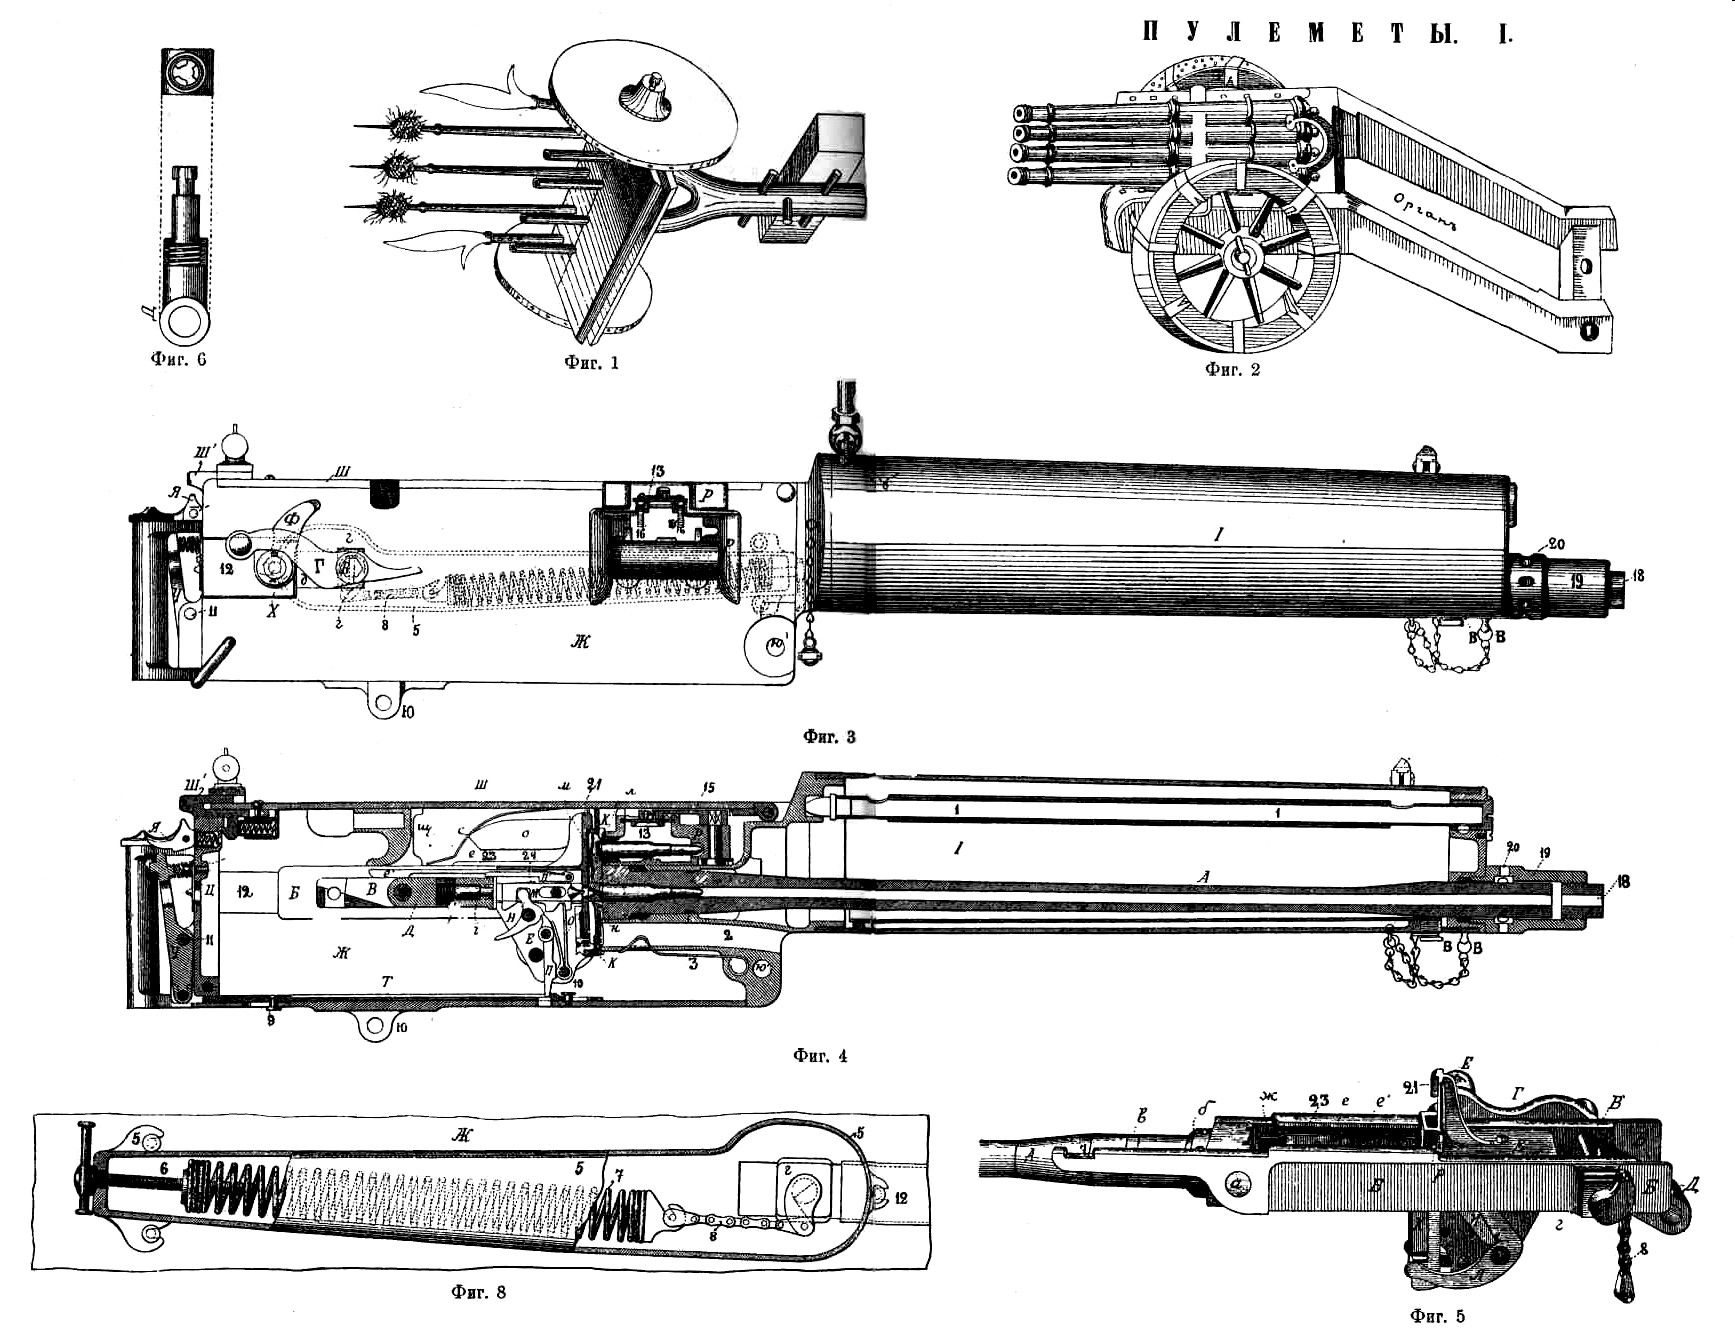 Maxim's Machine Gun Slaughtered Hundreds of Thousands of People